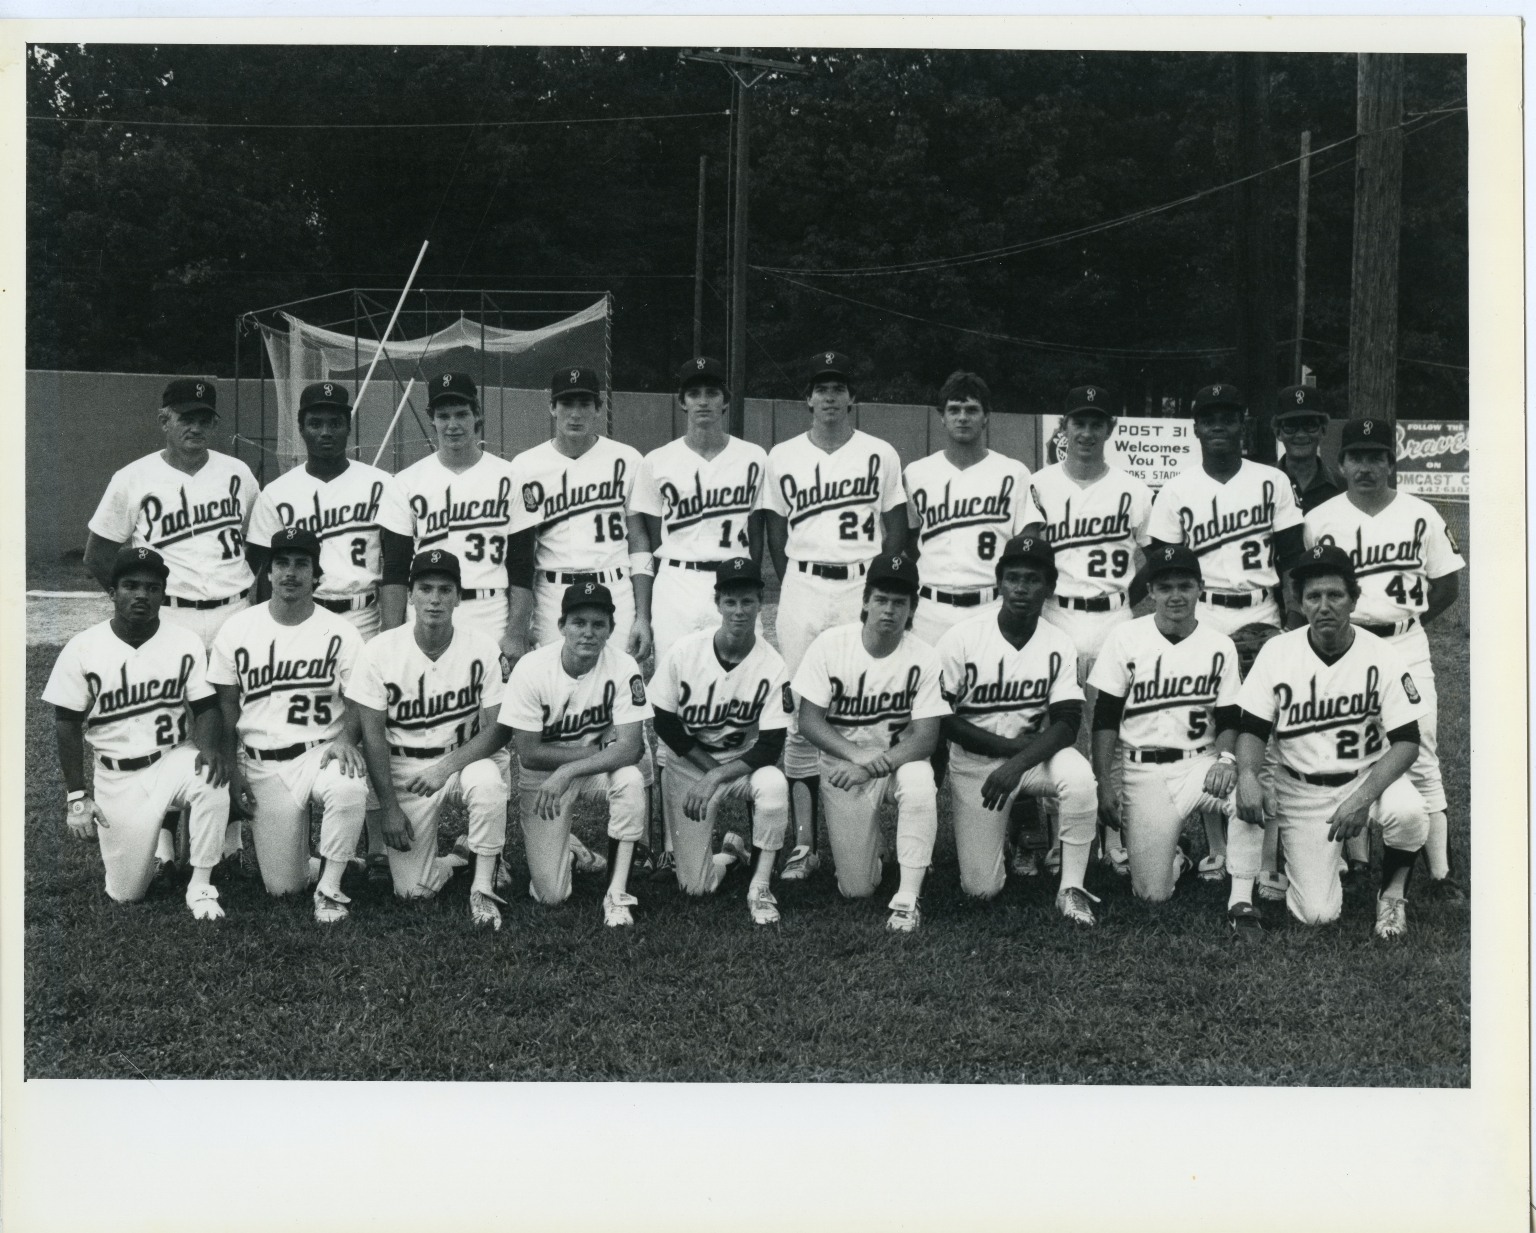 Paducah Post 31 Baseball Team